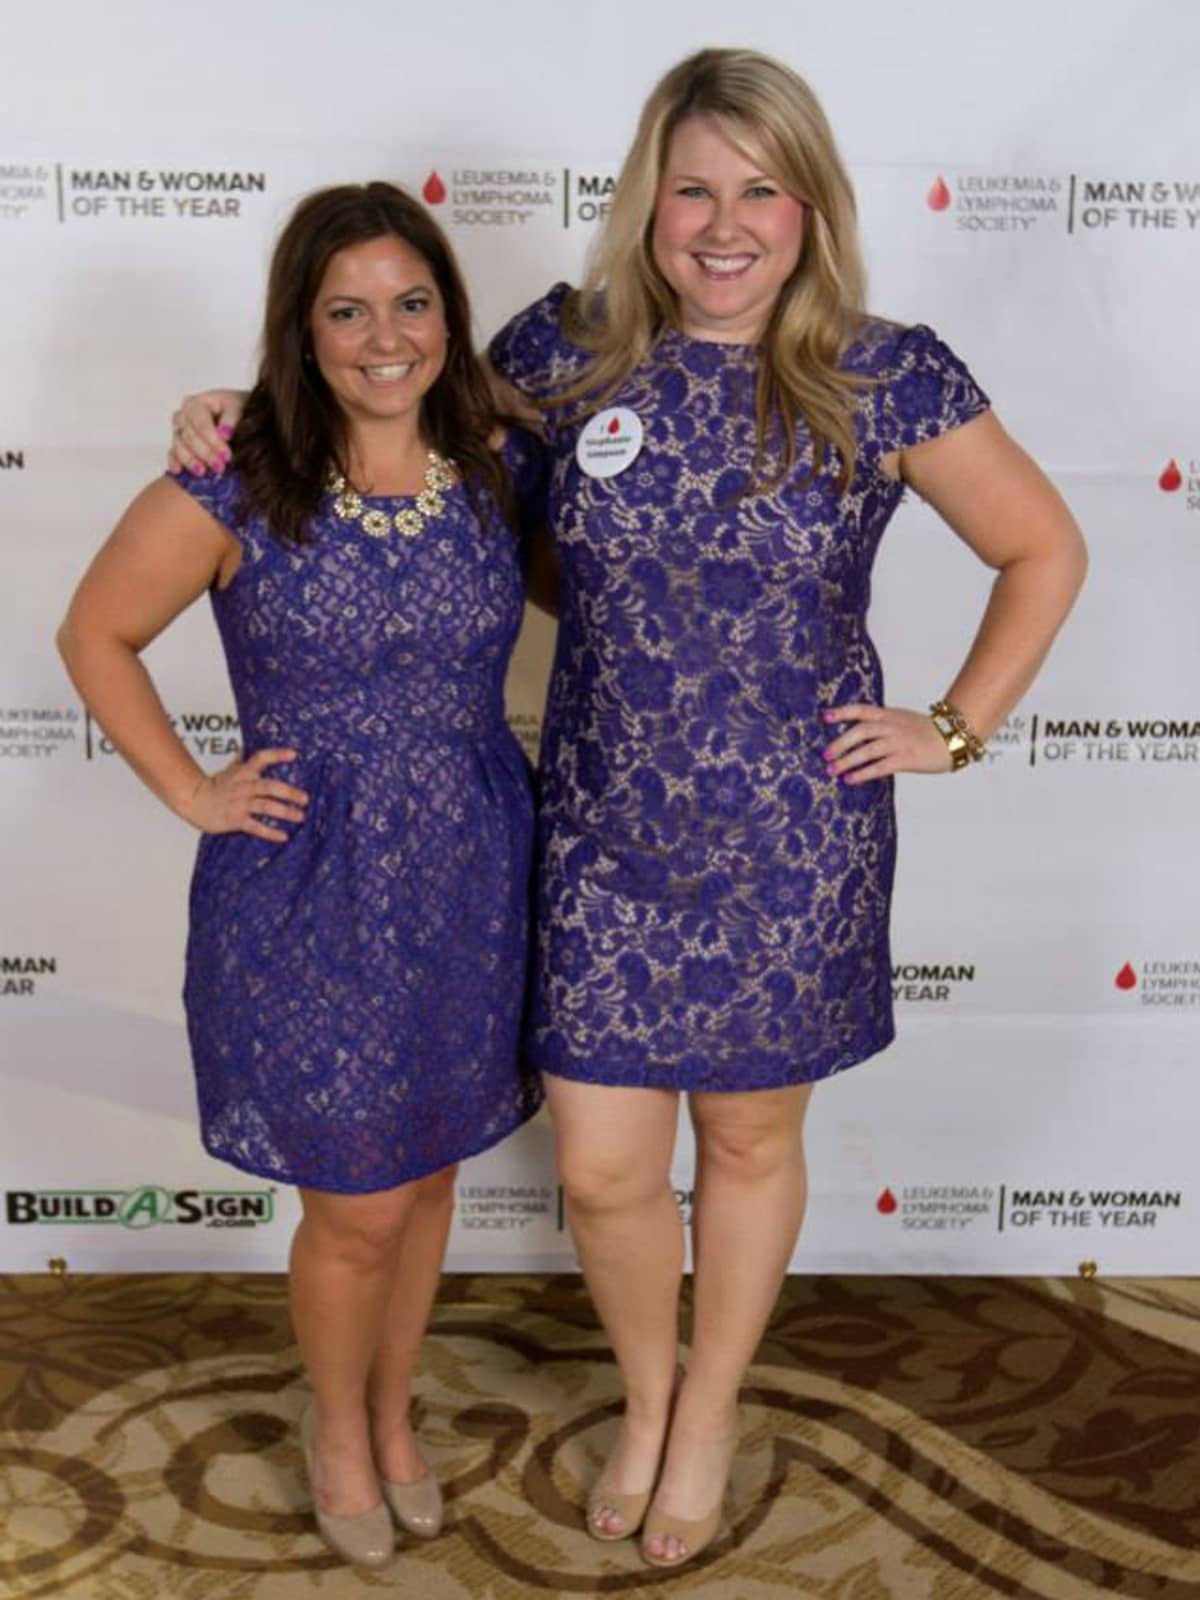 Leukemia & Lymphoma Society's Man & Woman of the Year Gala_Sarah Appolito_Anne Taylor Billingsley_2015